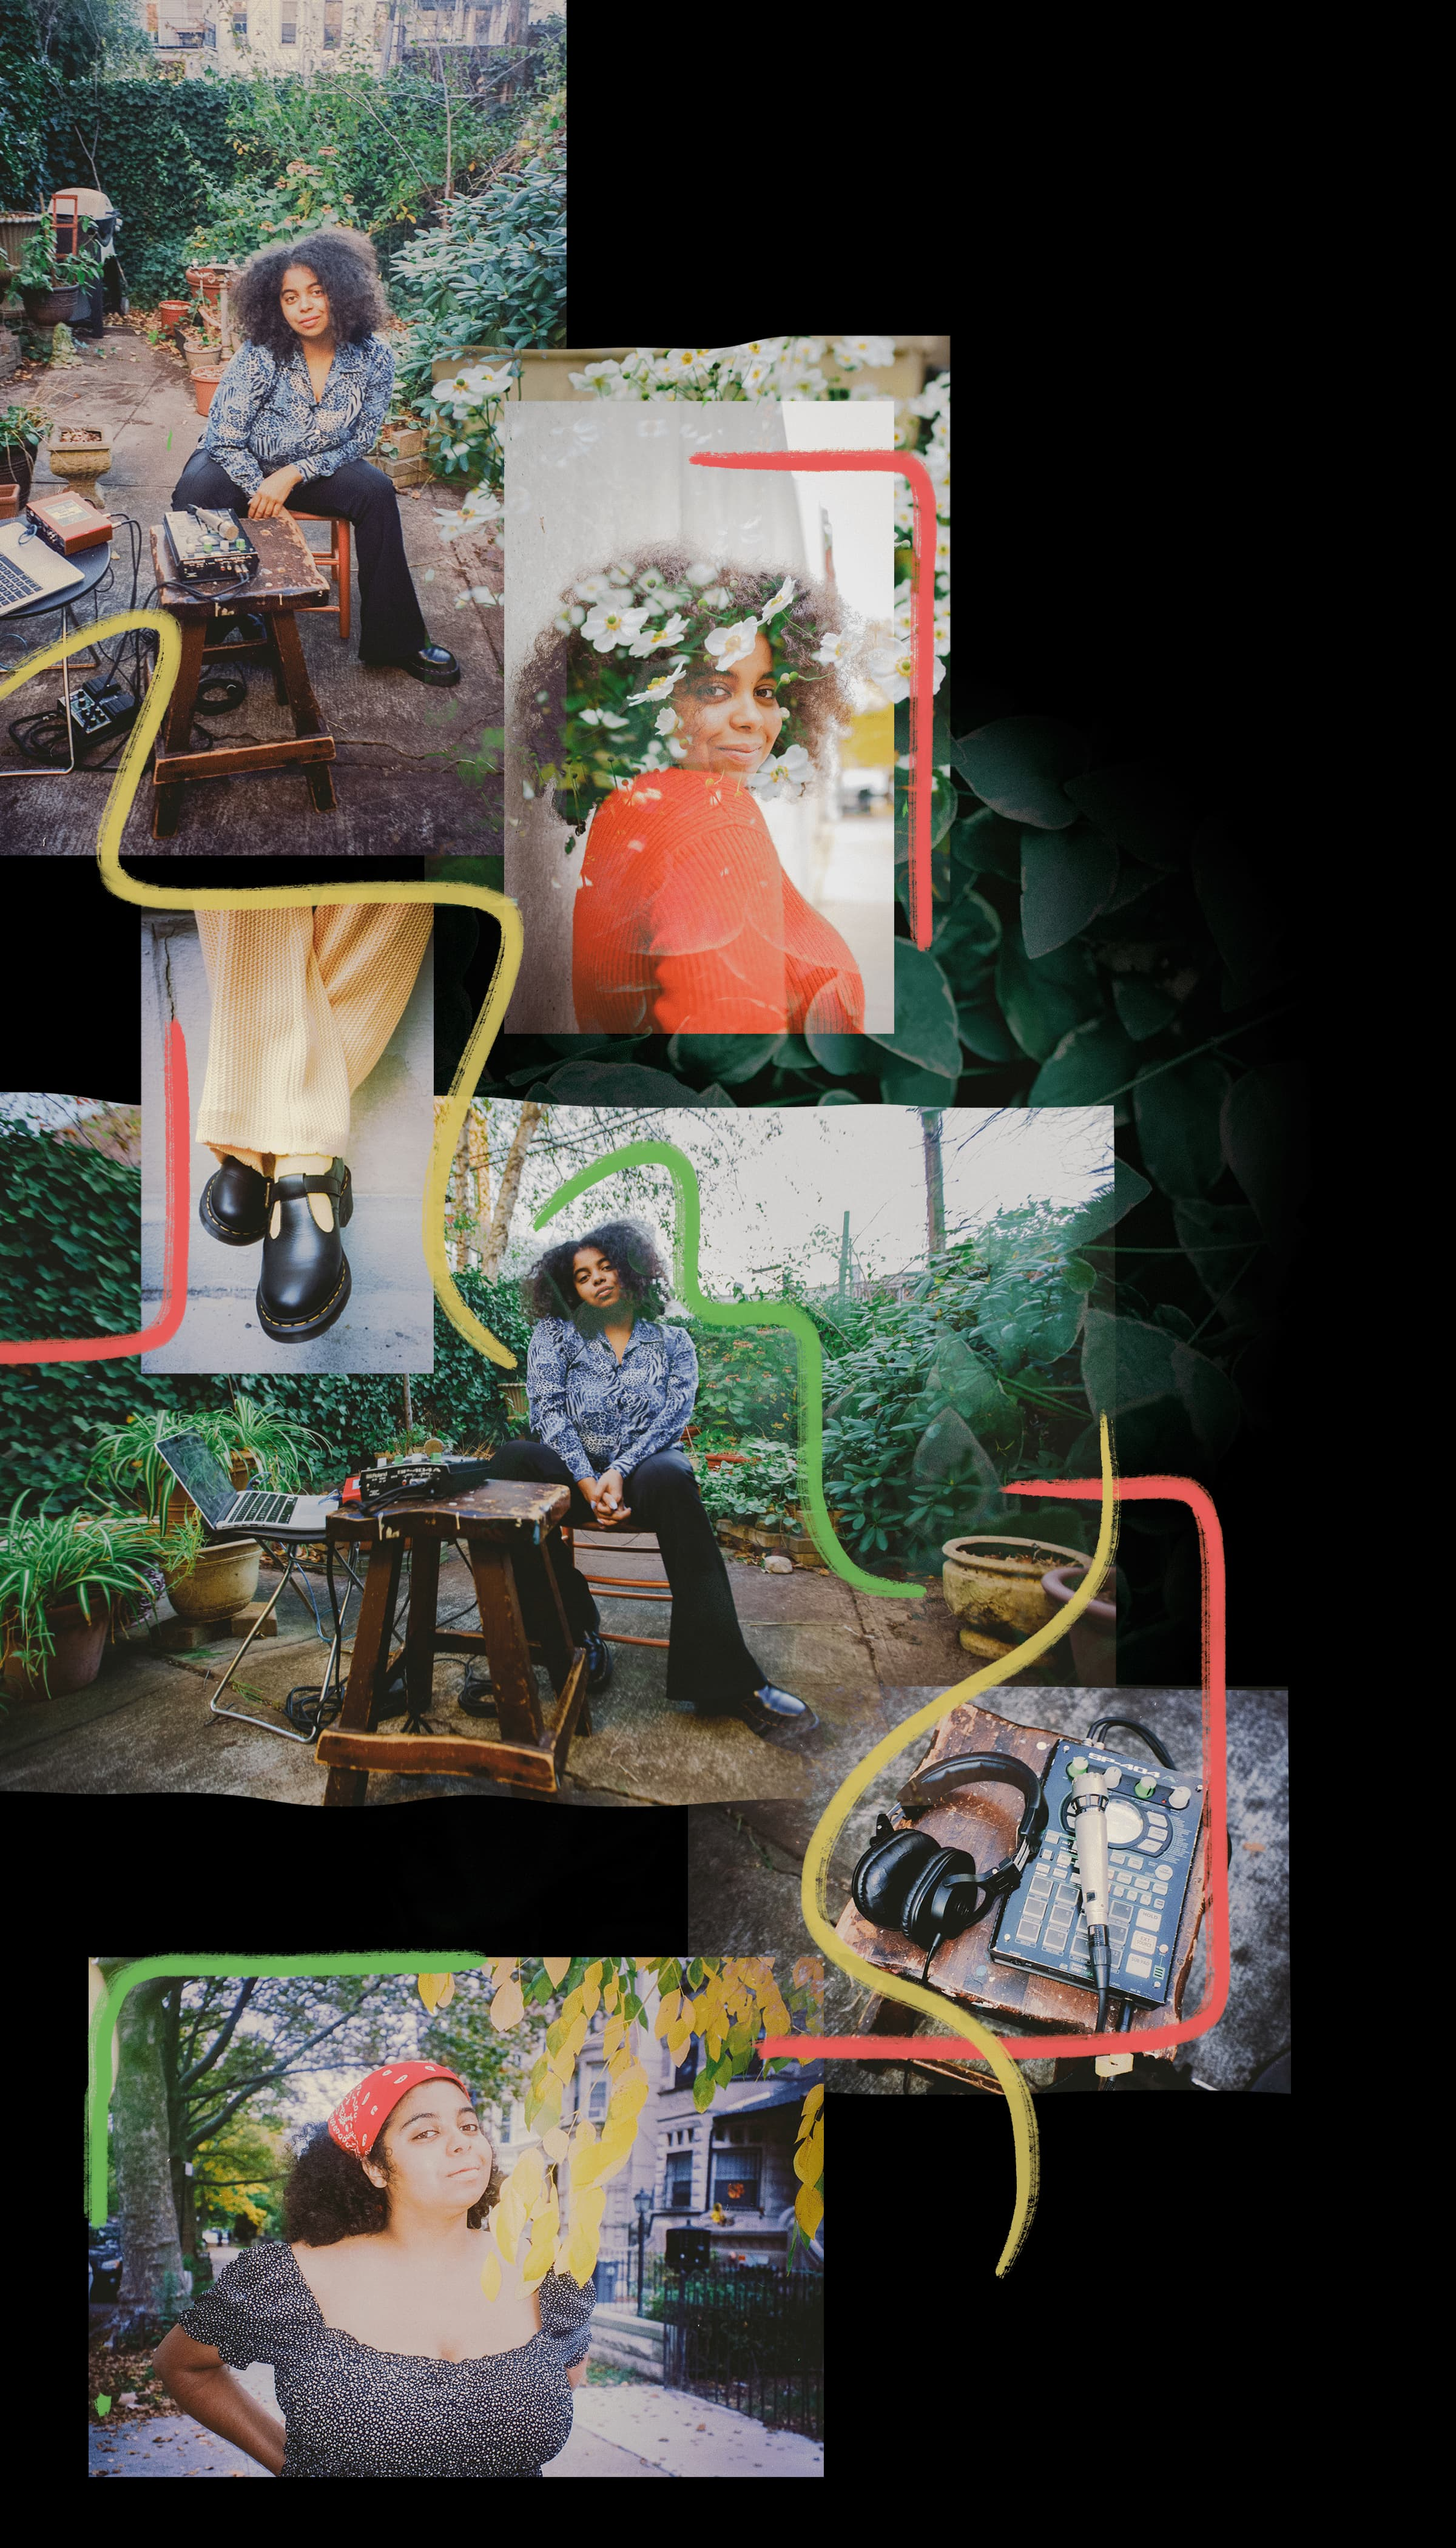 A collage of photos showing duendita in a garden, with recording equipment, highlighting her docs and outdoor recording